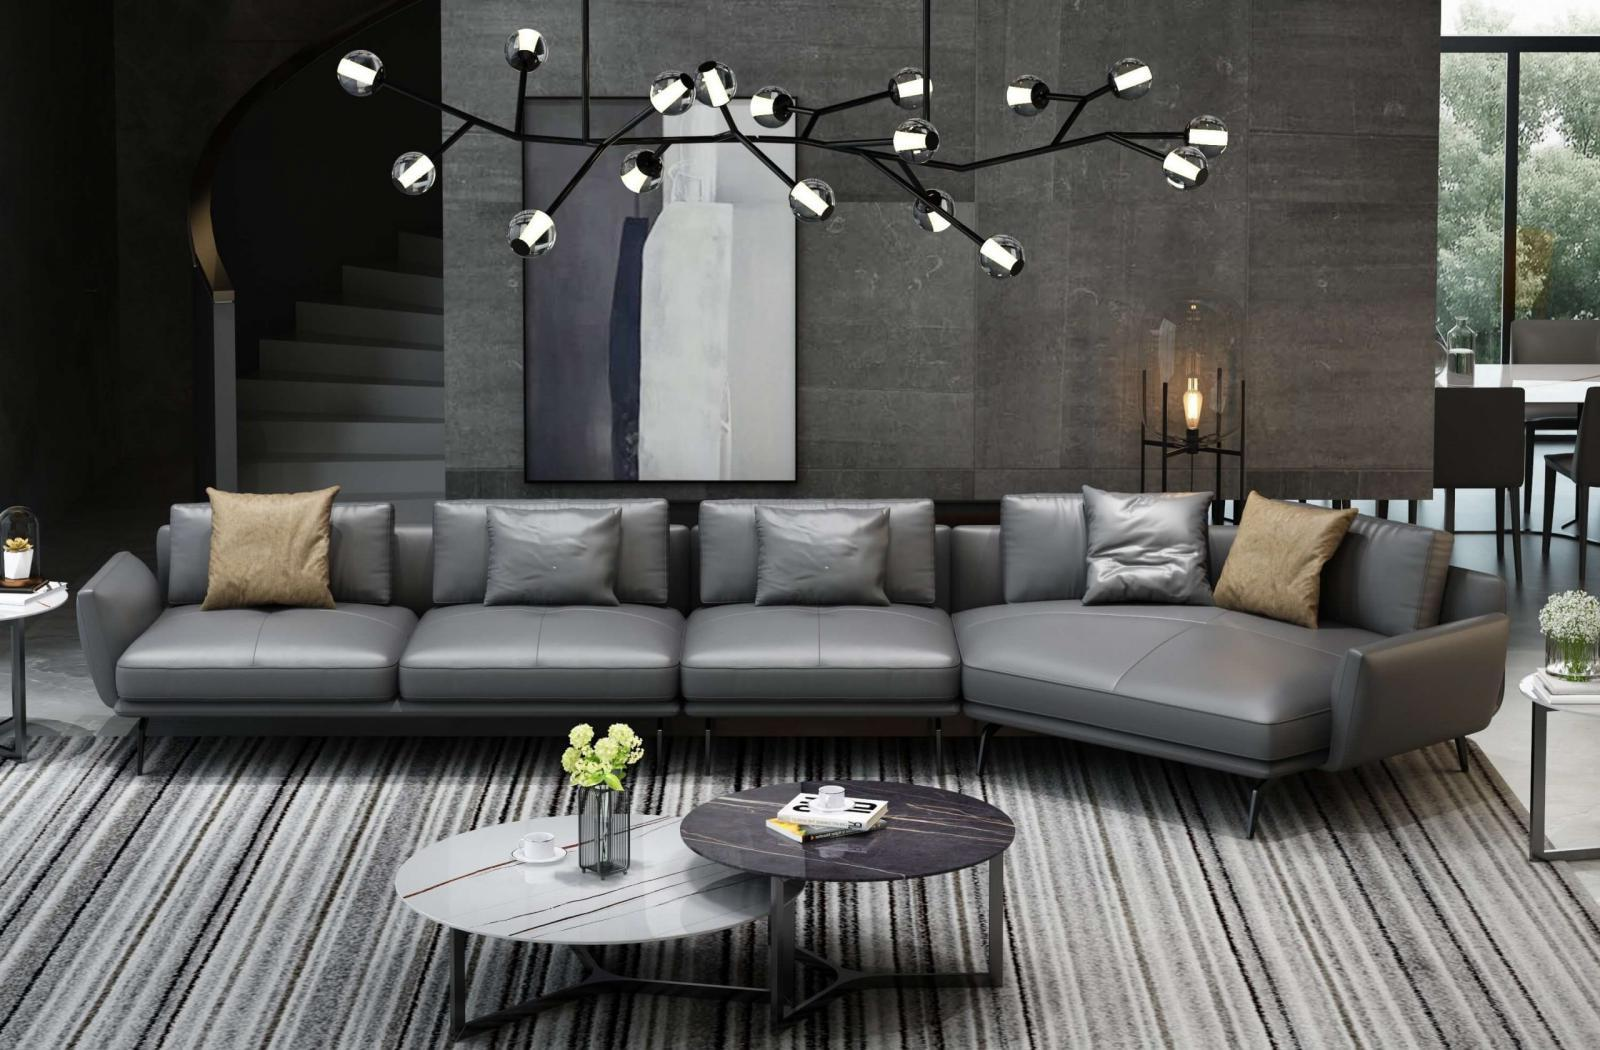 Modern  Vintage Grey  Smoked Wood  Genuine leather  Solid Hardwood and Italian Leather Sectional Sofa EUROPEAN FURNITURE EF-54434R-3RHC